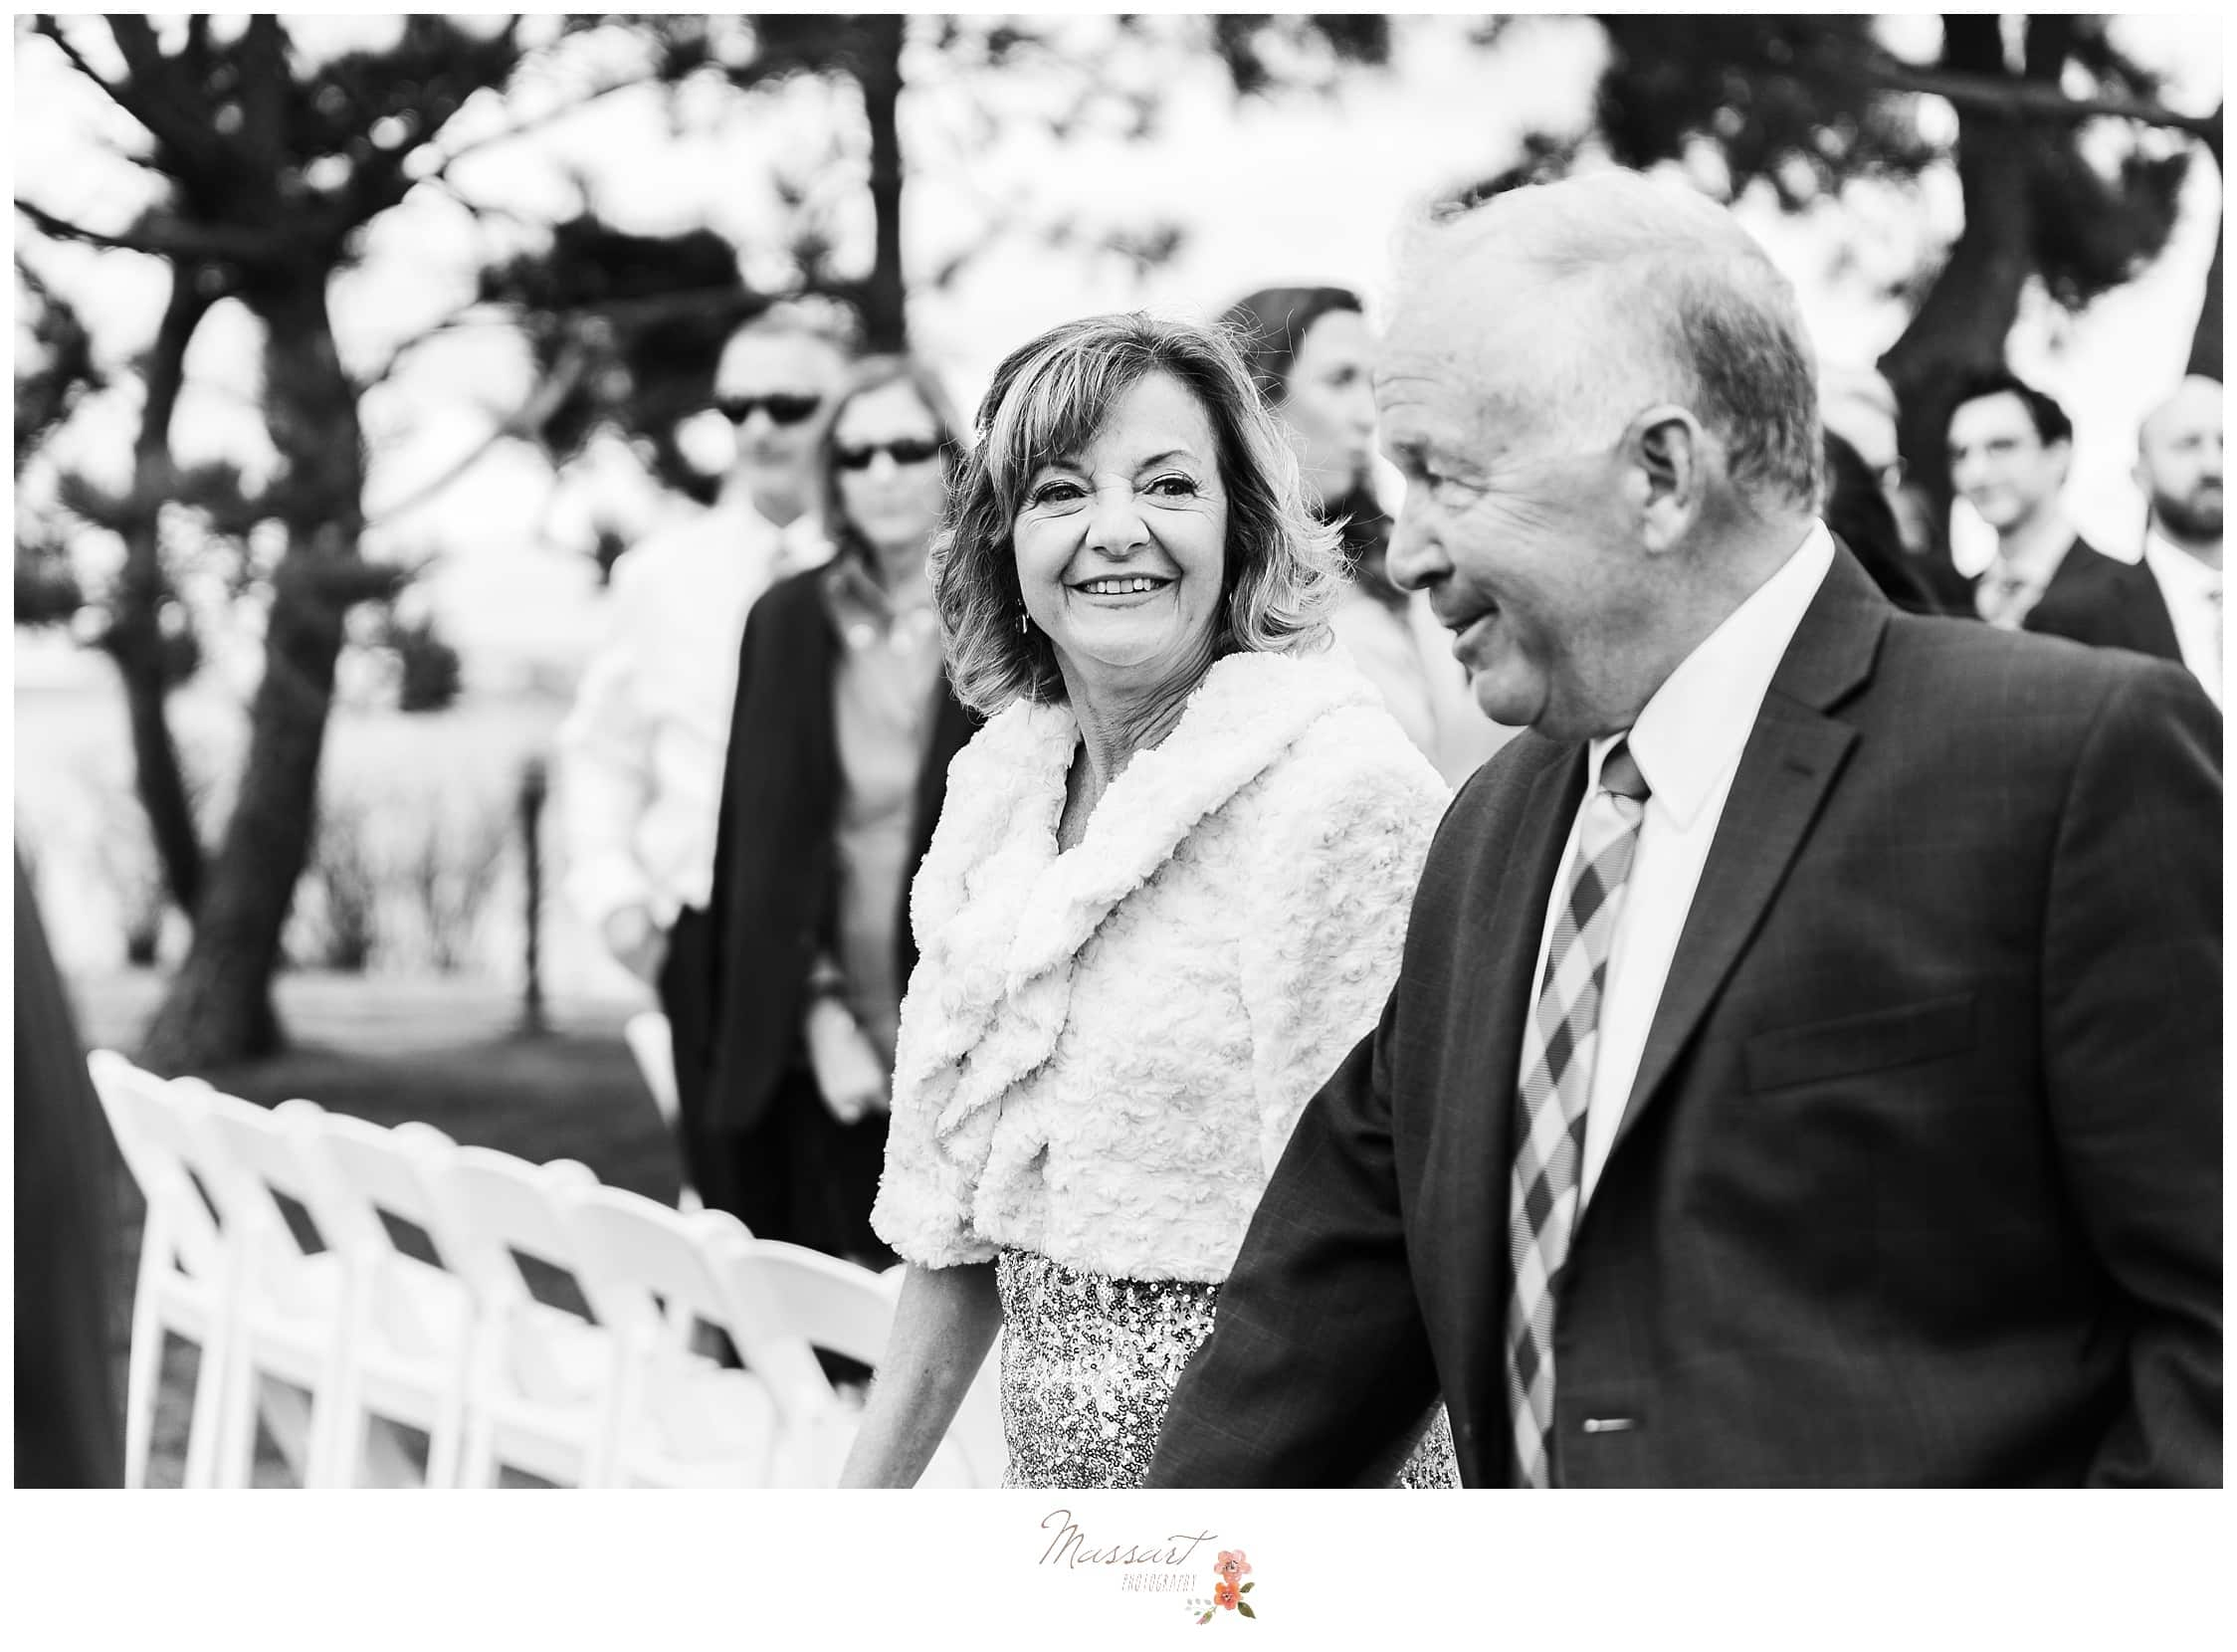 The bride's mother and father during the wedding ceremony photographed by Massart Photography Rhode Island